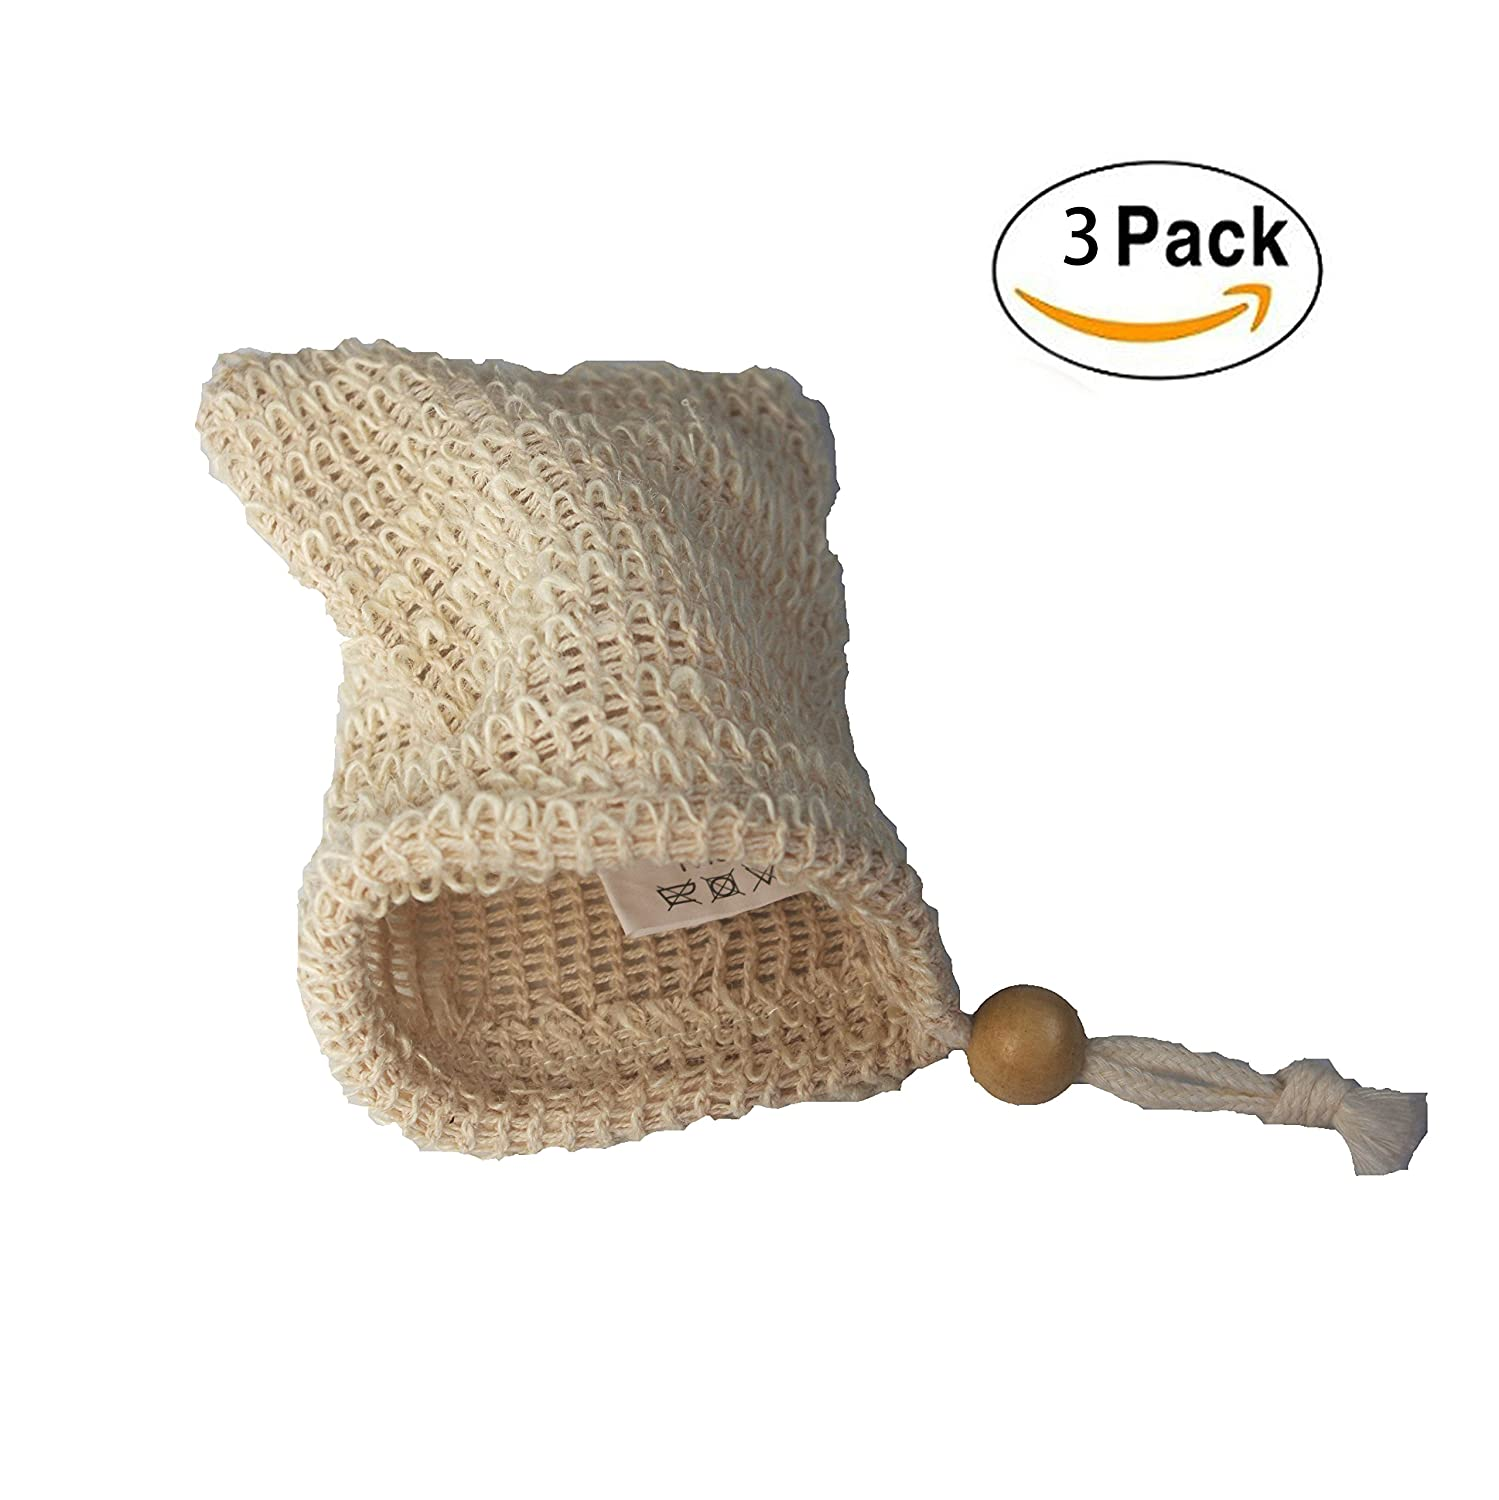 TTYBG Exfoliating Natural Sisal Soap Saver Bag Pouch Holder for Shower Bath Pack of 3